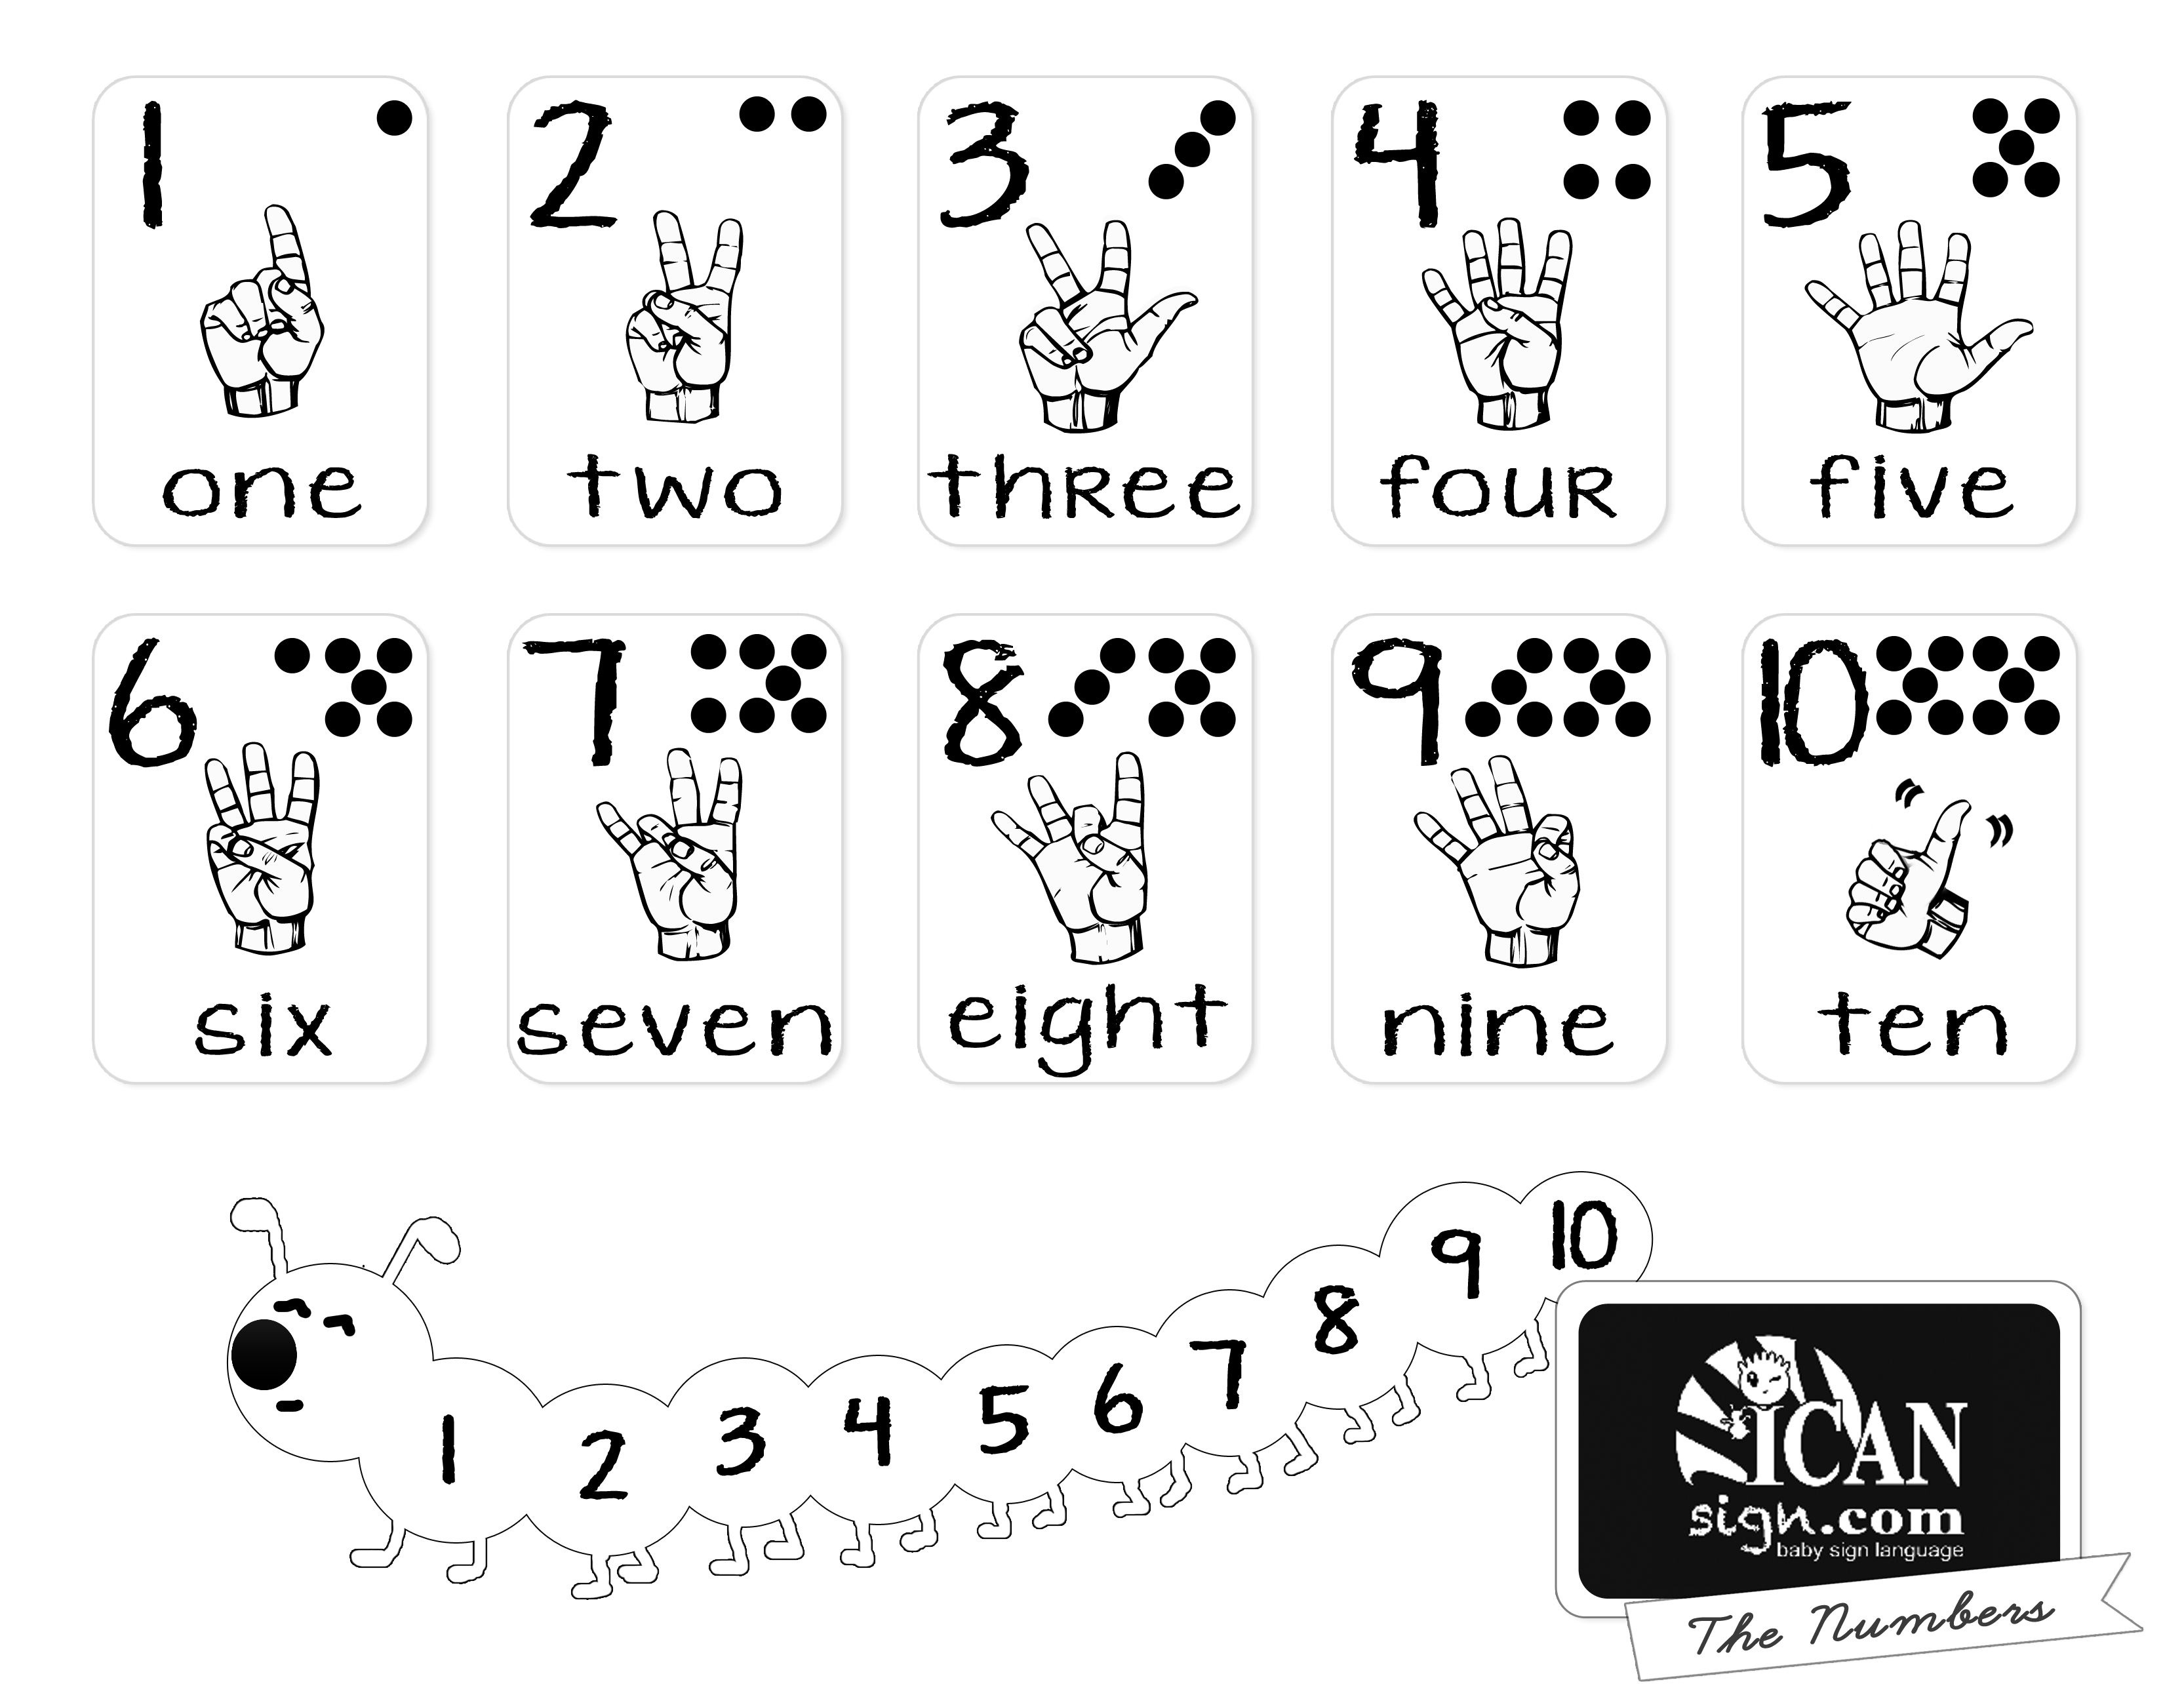 Printer-Friendly Asl Numbers Chart - Free Printable From Icansign - Free Sign Language Printables